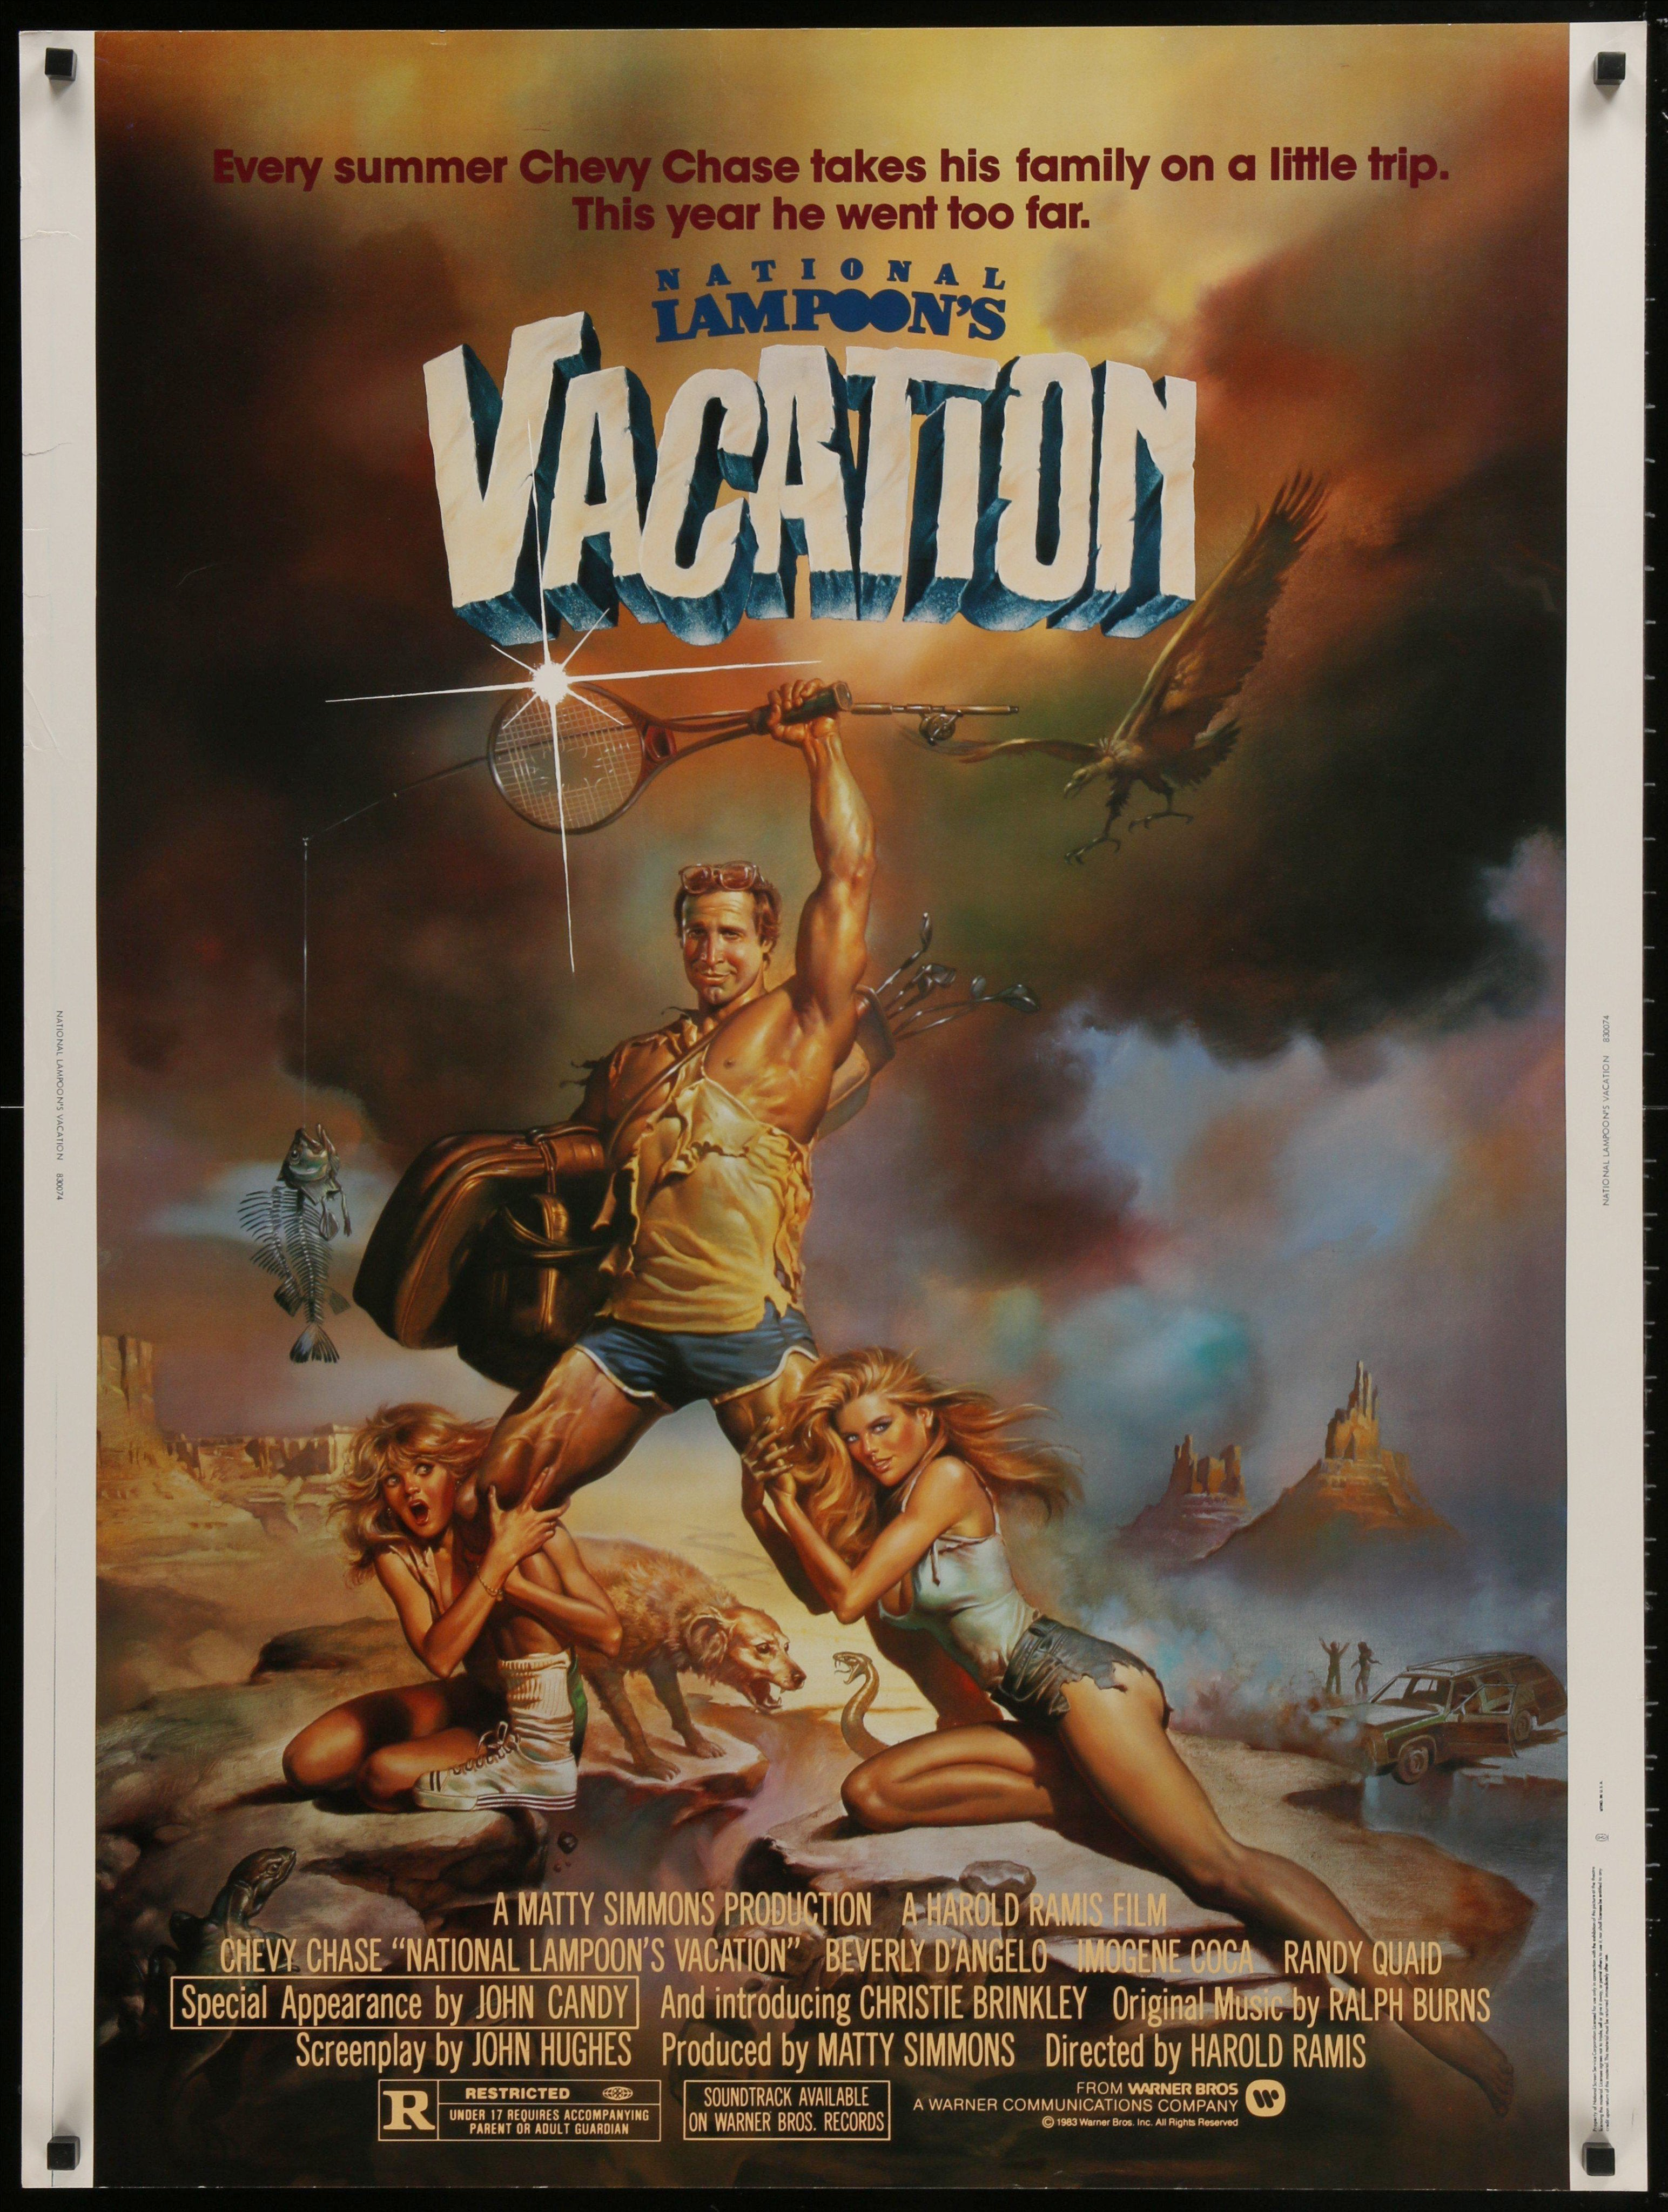 National Lampoon's Vacation 30x40 Original Vintage Movie Poster